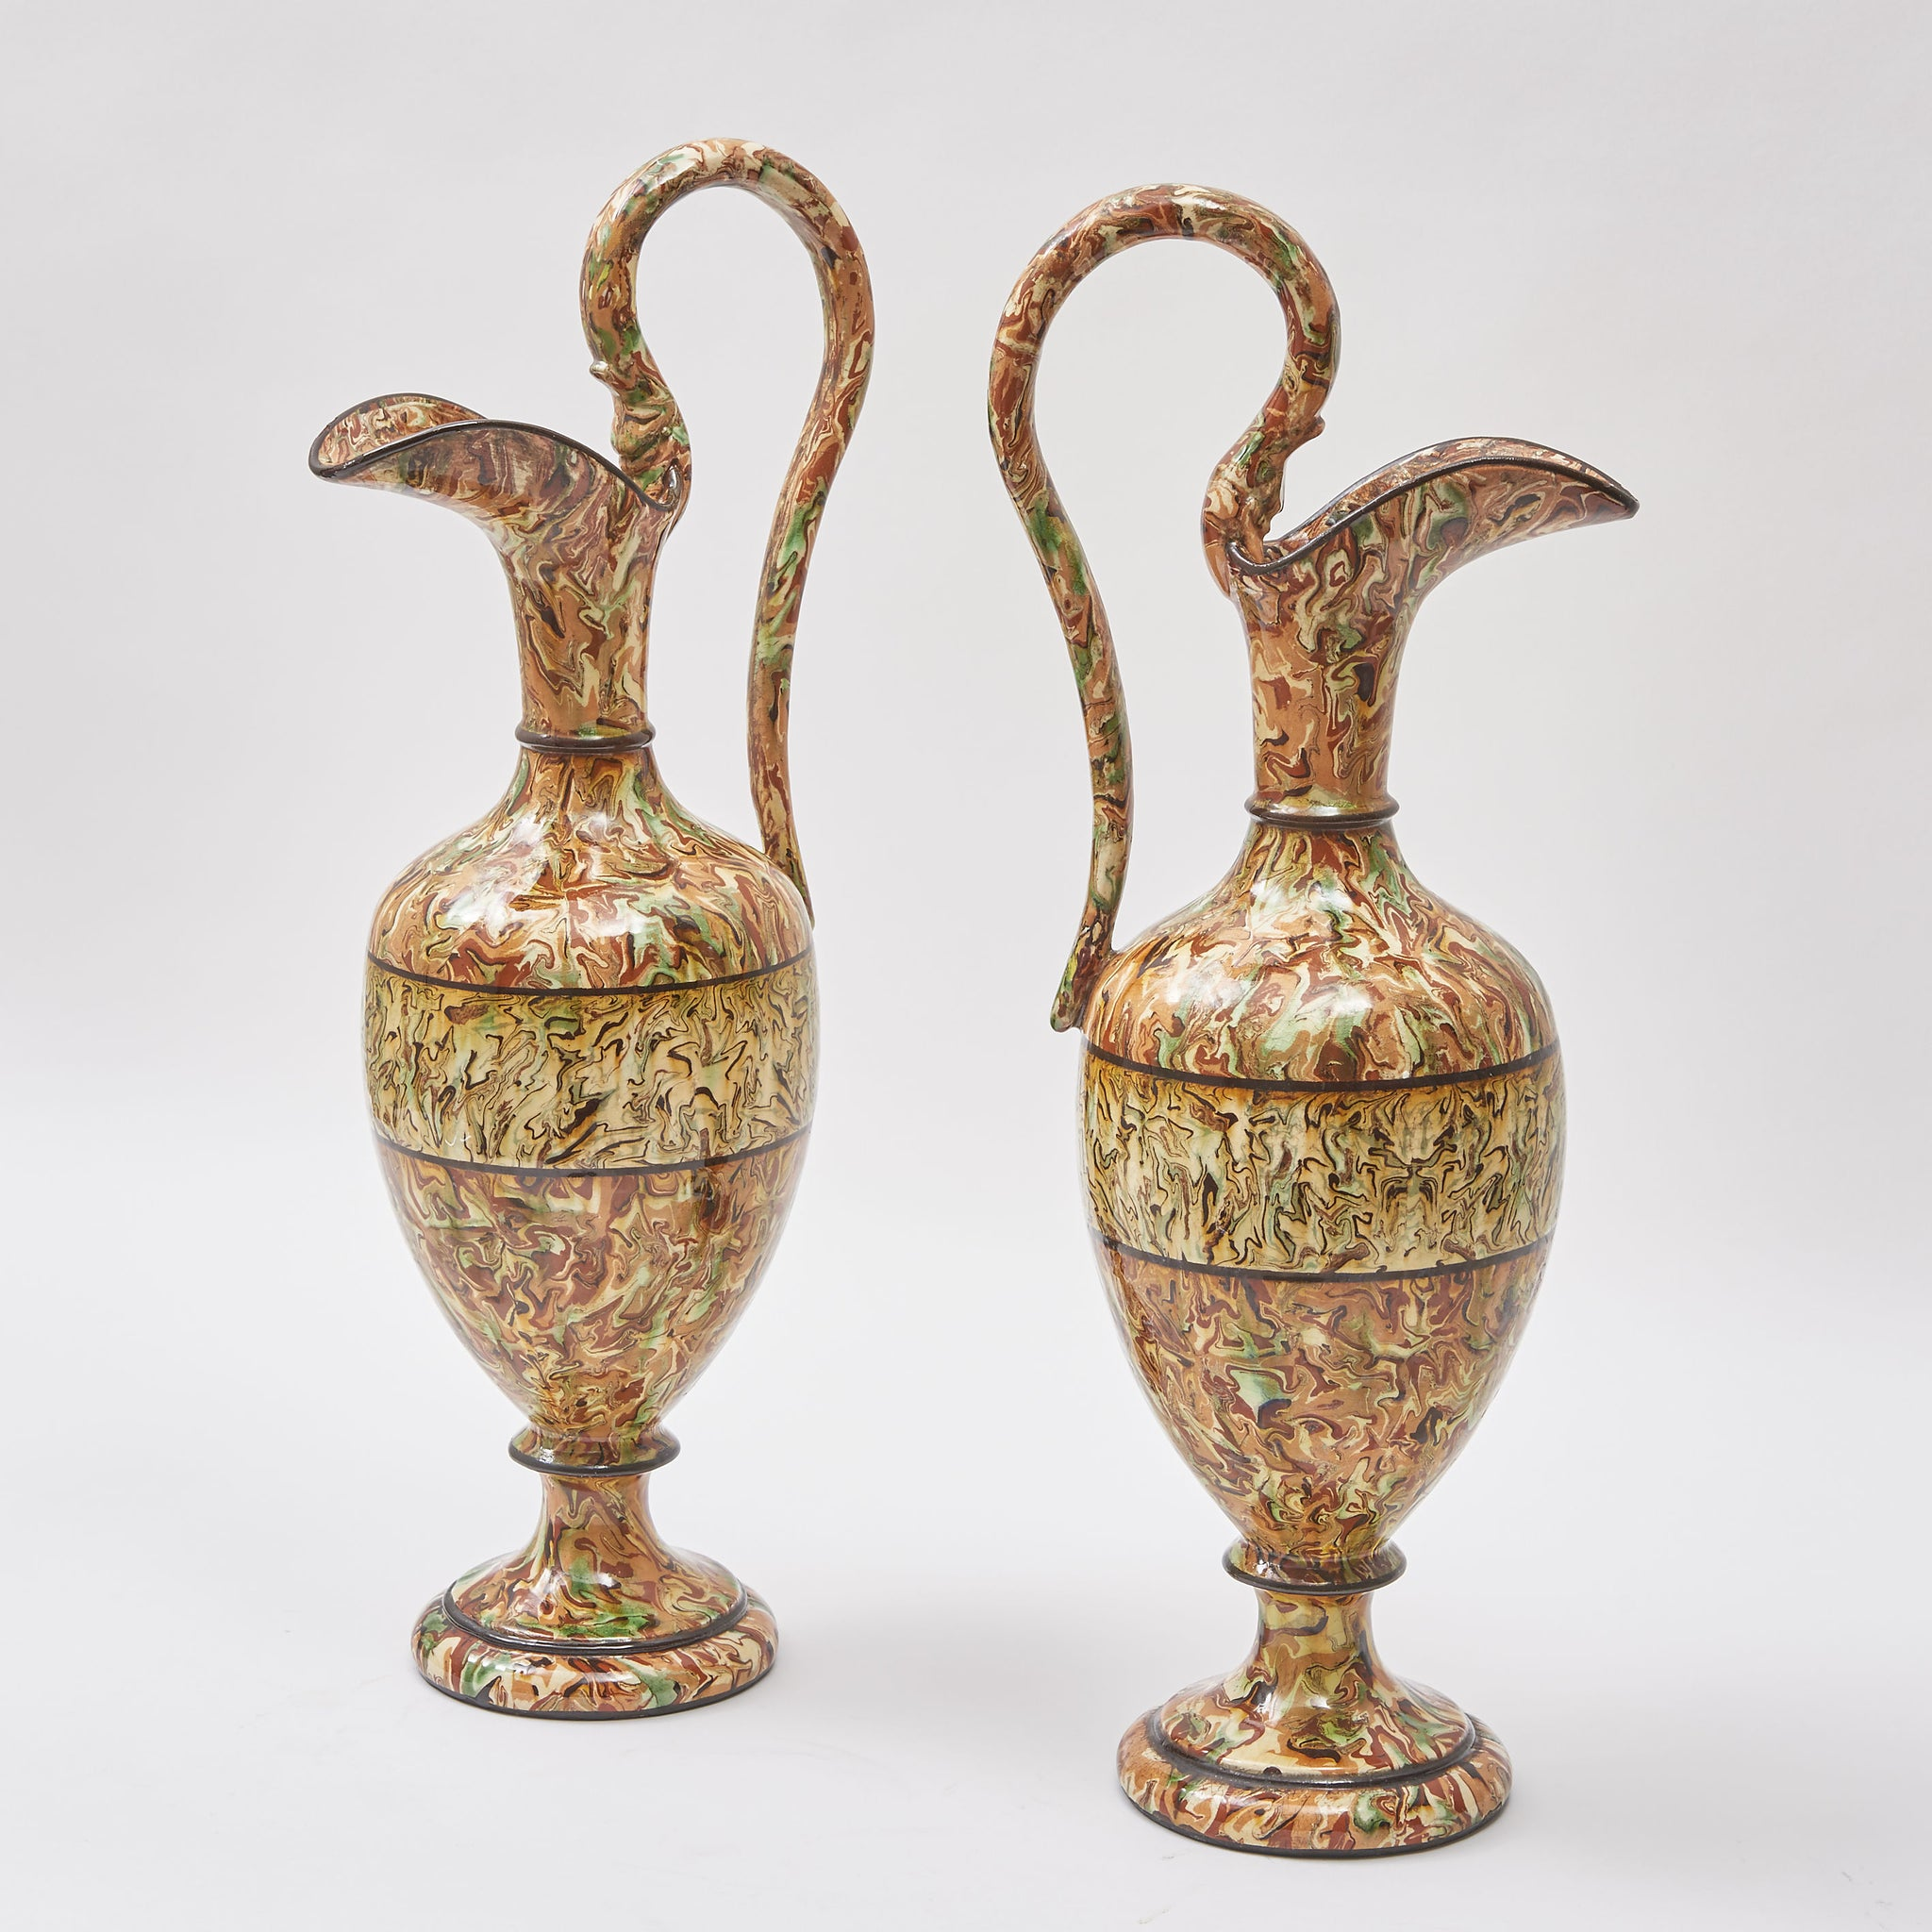 Pair of Provencale Agateware Ewers